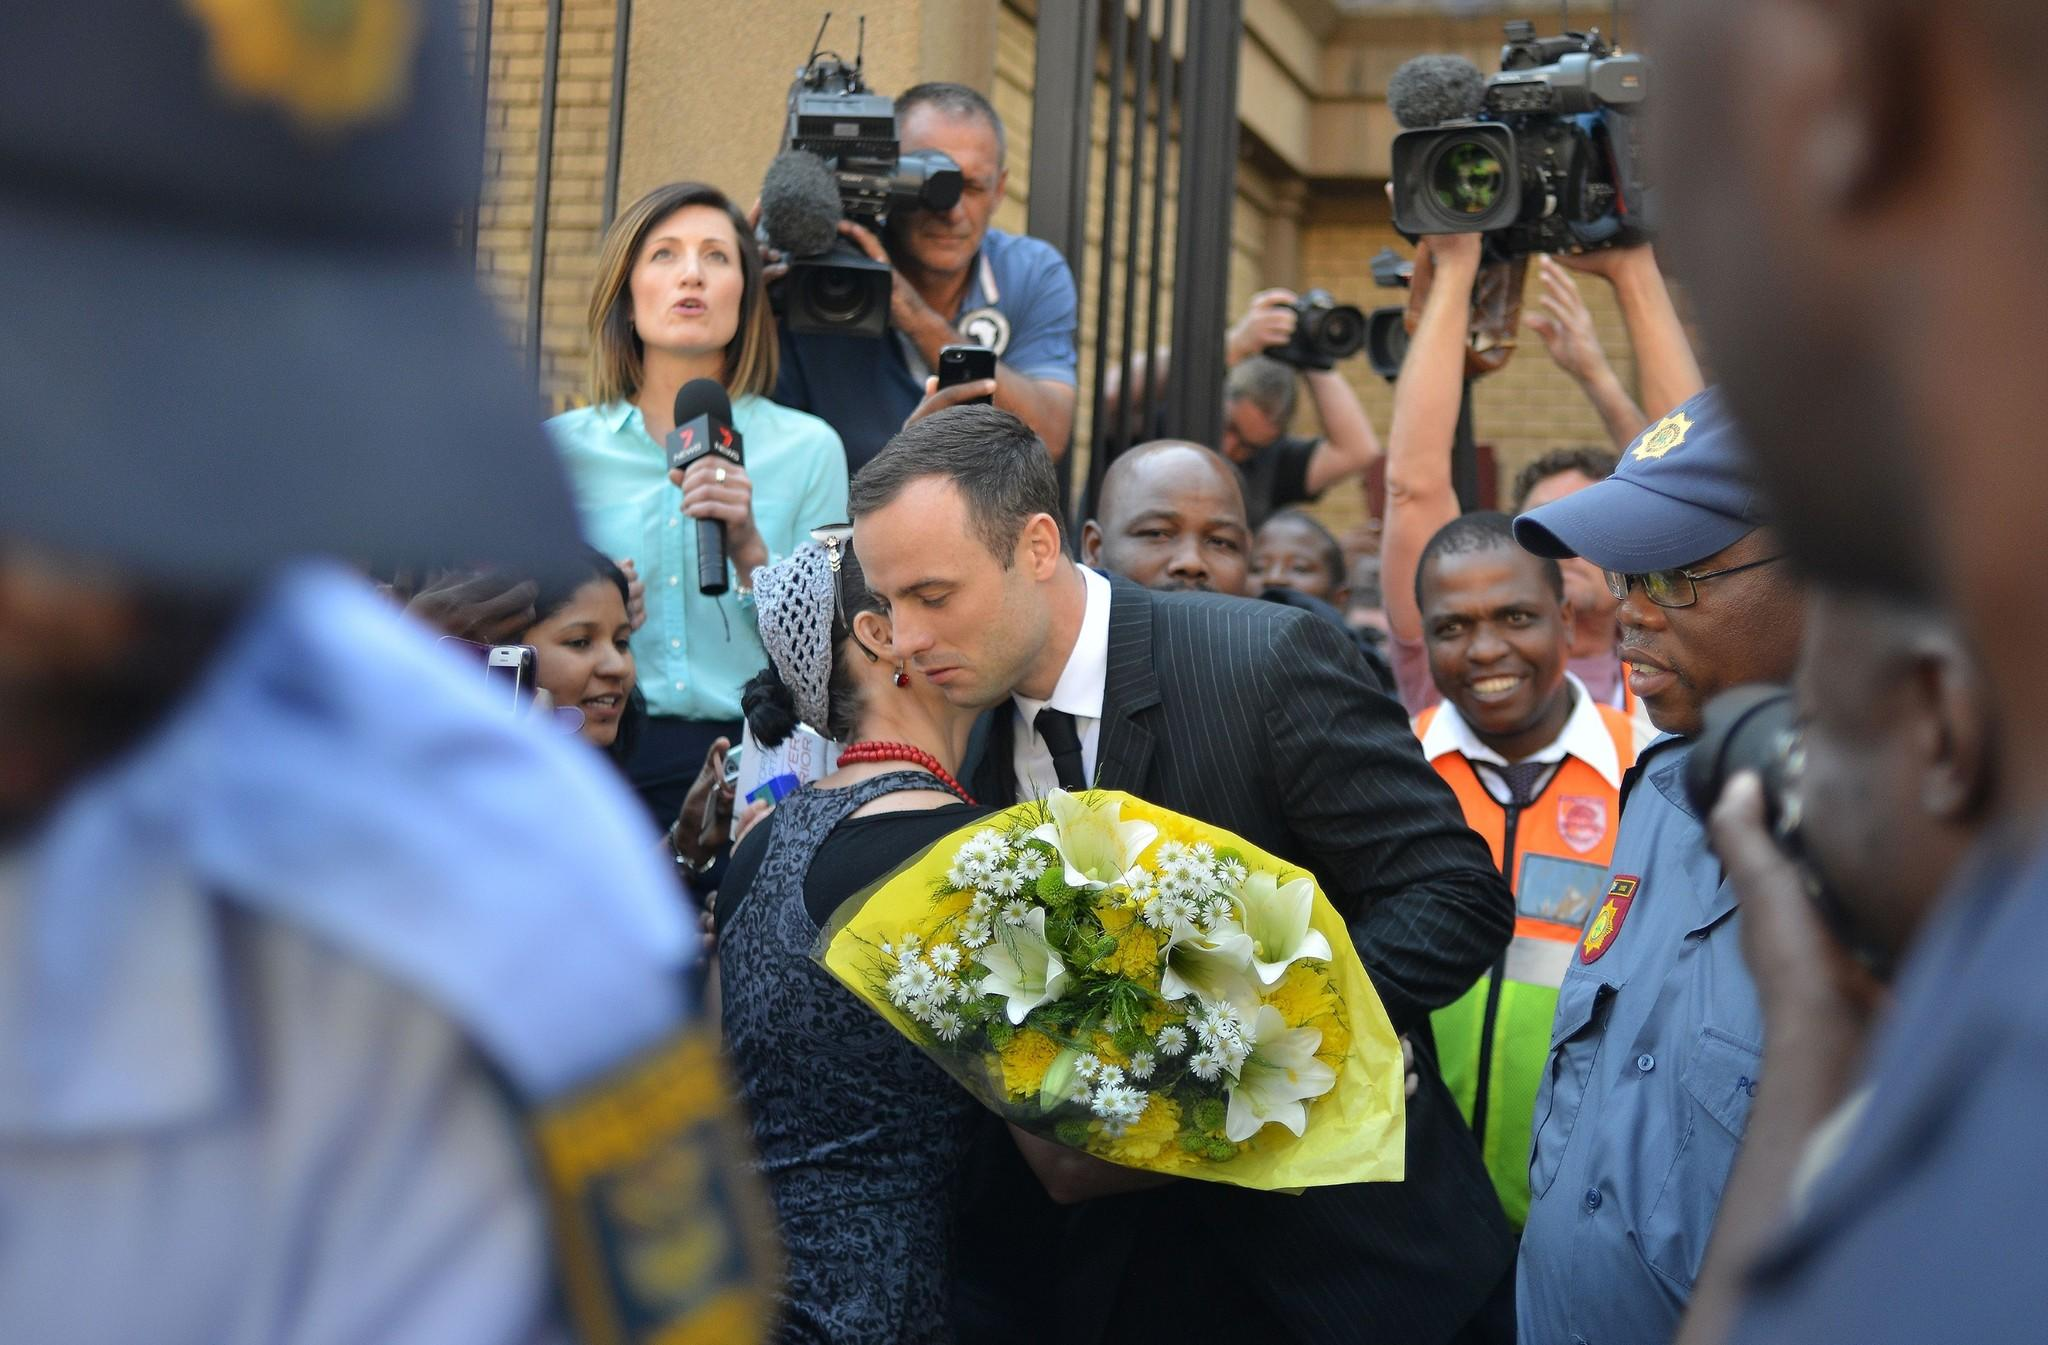 A woman hugs South African athlete Oscar Pistorius after handing him flowers as he leaves court in Pretoria on Friday.